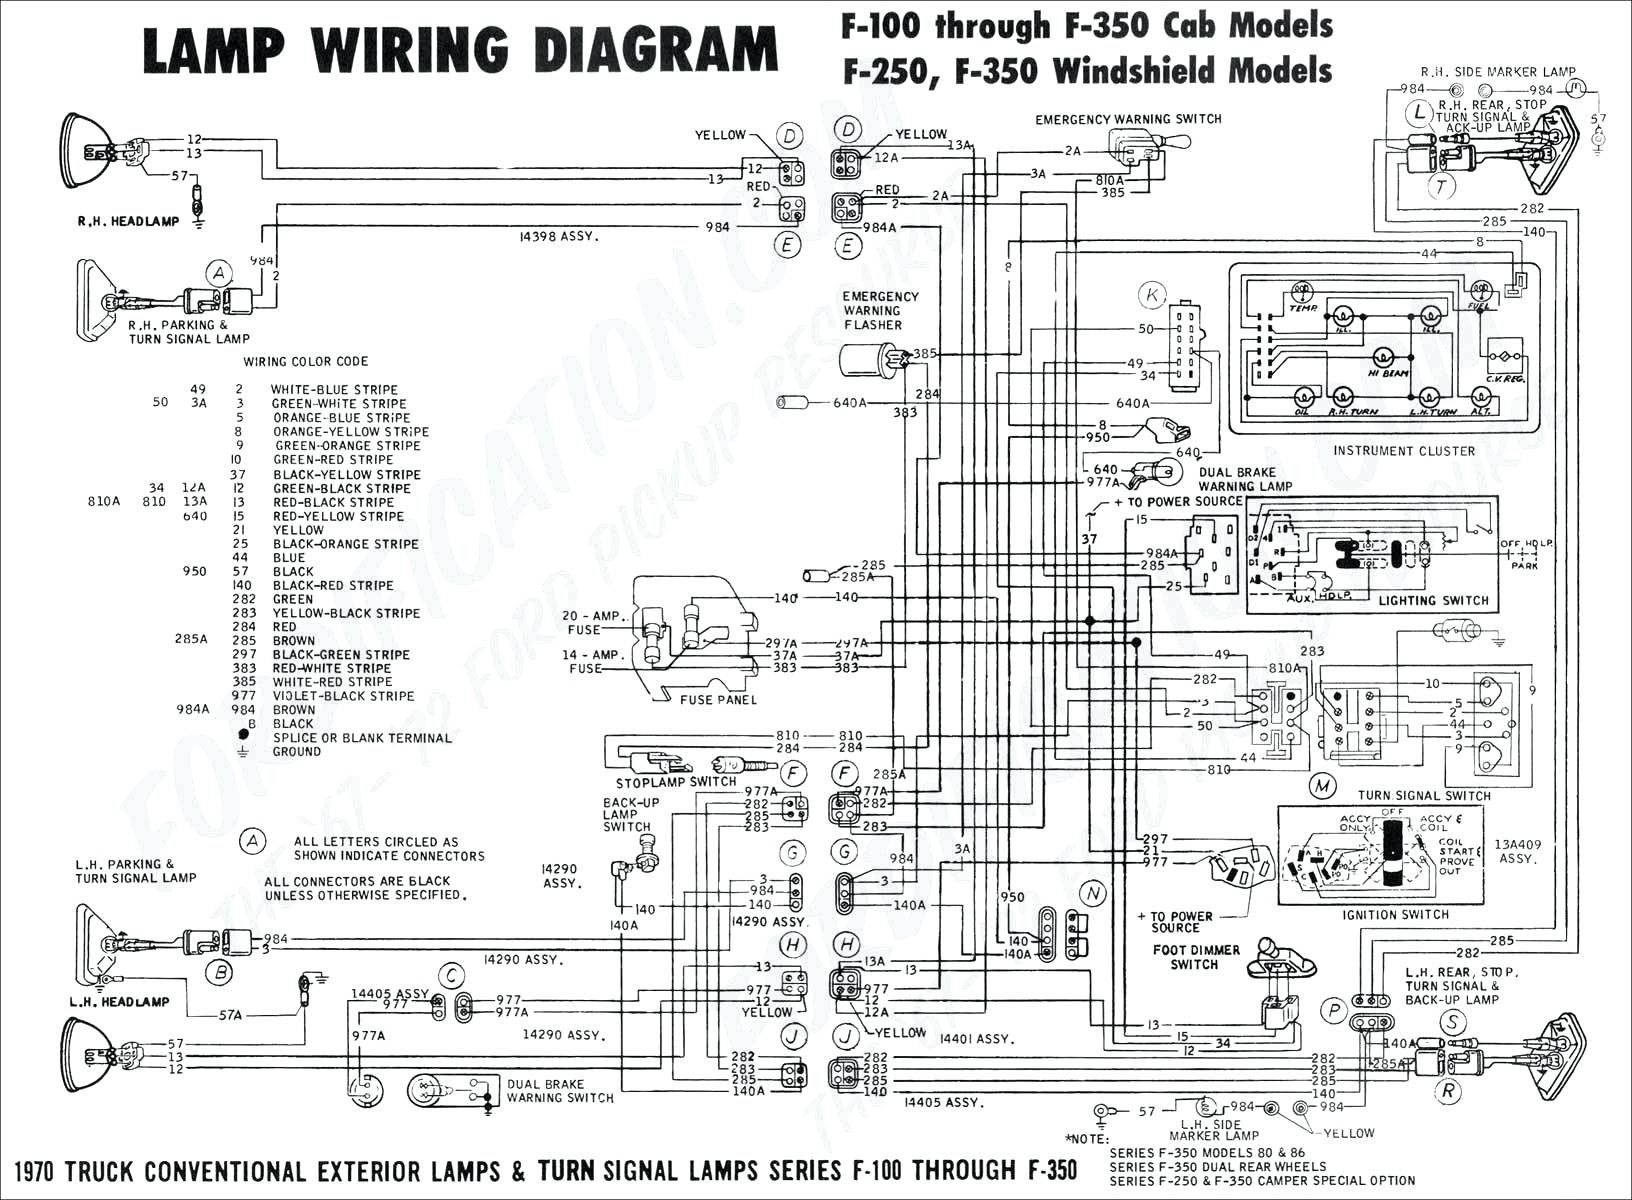 2012 Kia Sportage Wiring Schematic Library Fuse Diagram My Soul Box Map Complete Diagrams U2022 Rh Oldorchardfarm Co 2006